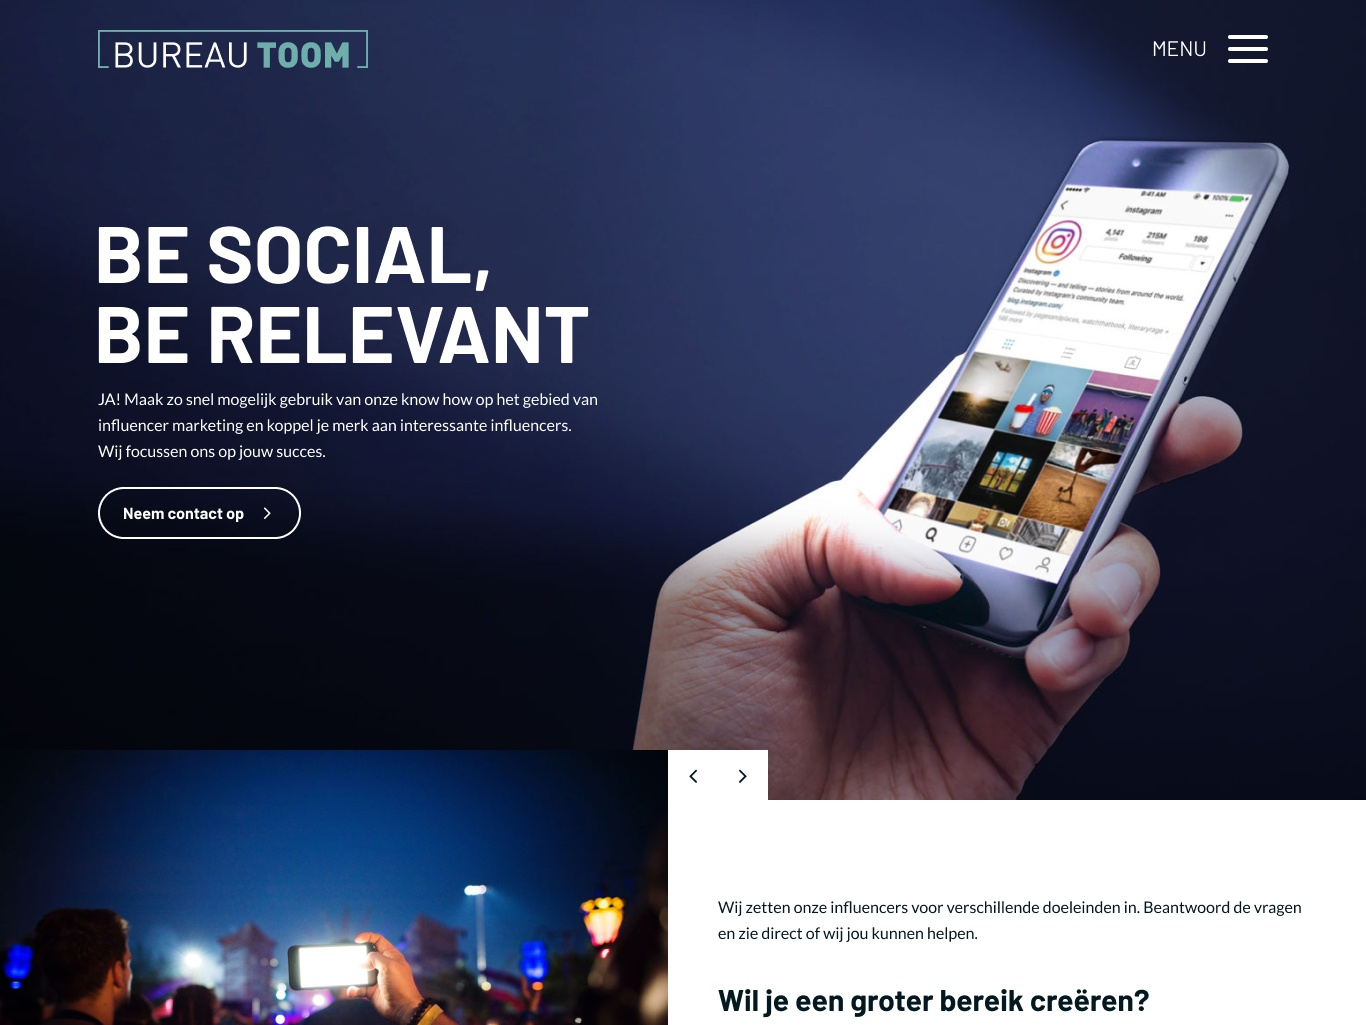 Hero image with call to action and slider by bureau feith